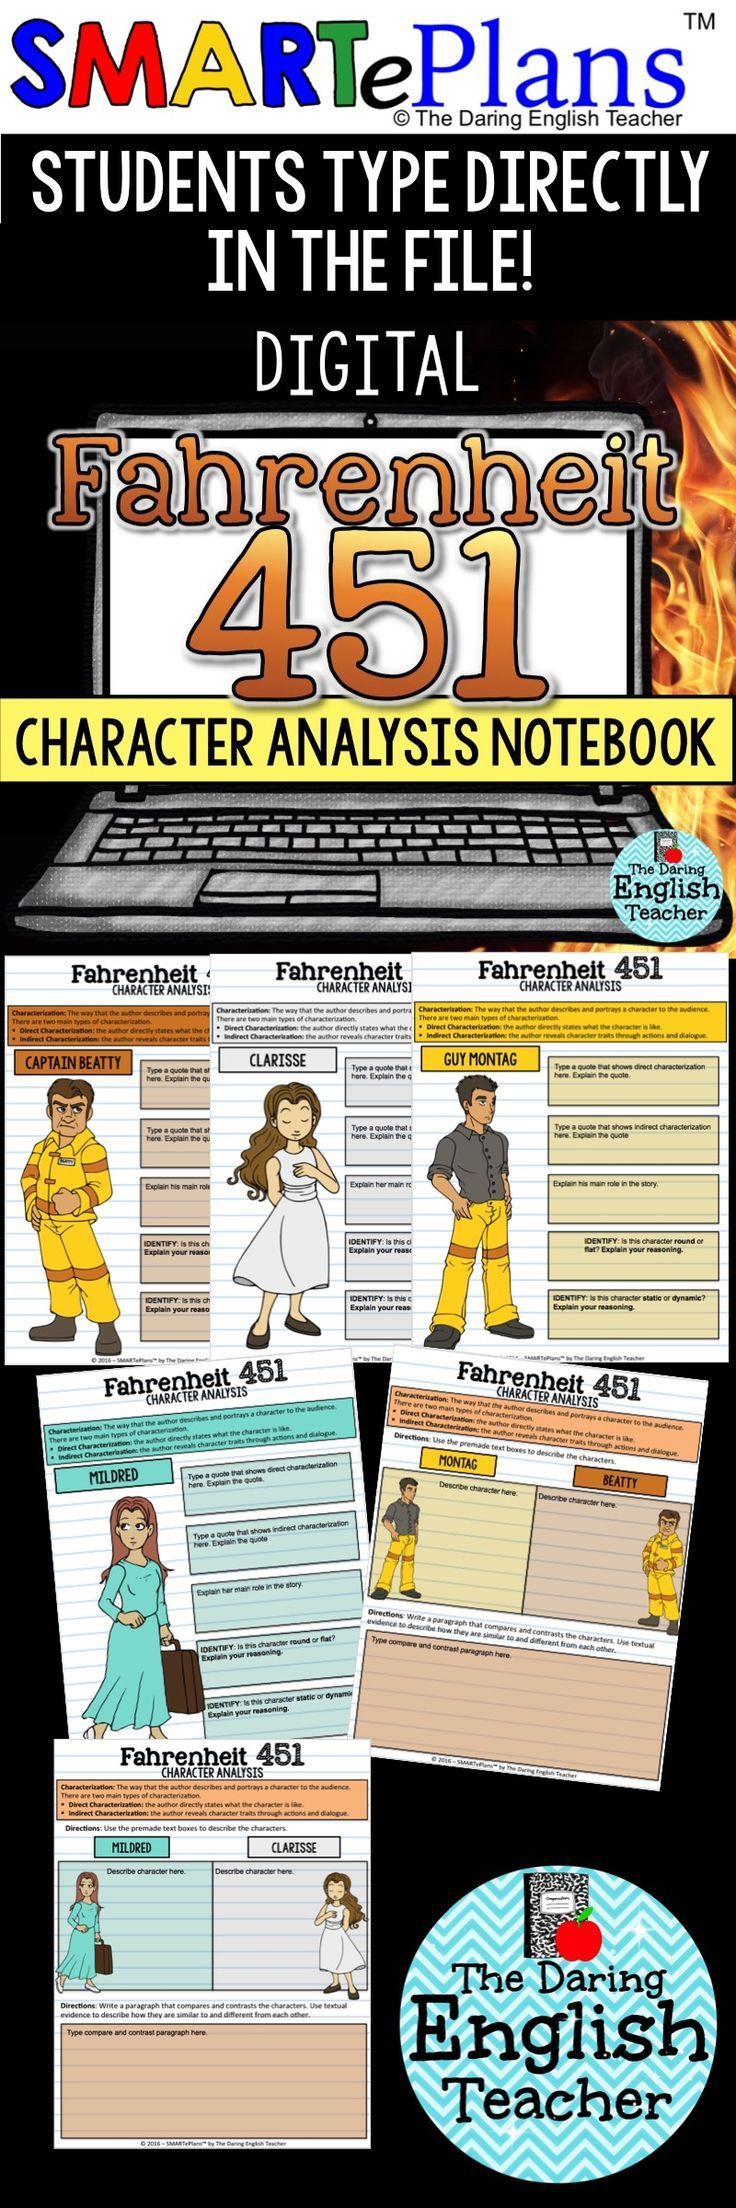 character analysis essay fahrenheit 451 Get free homework help on ray bradbury's fahrenheit 451: book summary, chapter summary and analysis, quotes, essays, and character analysis courtesy of cliffsnotes.